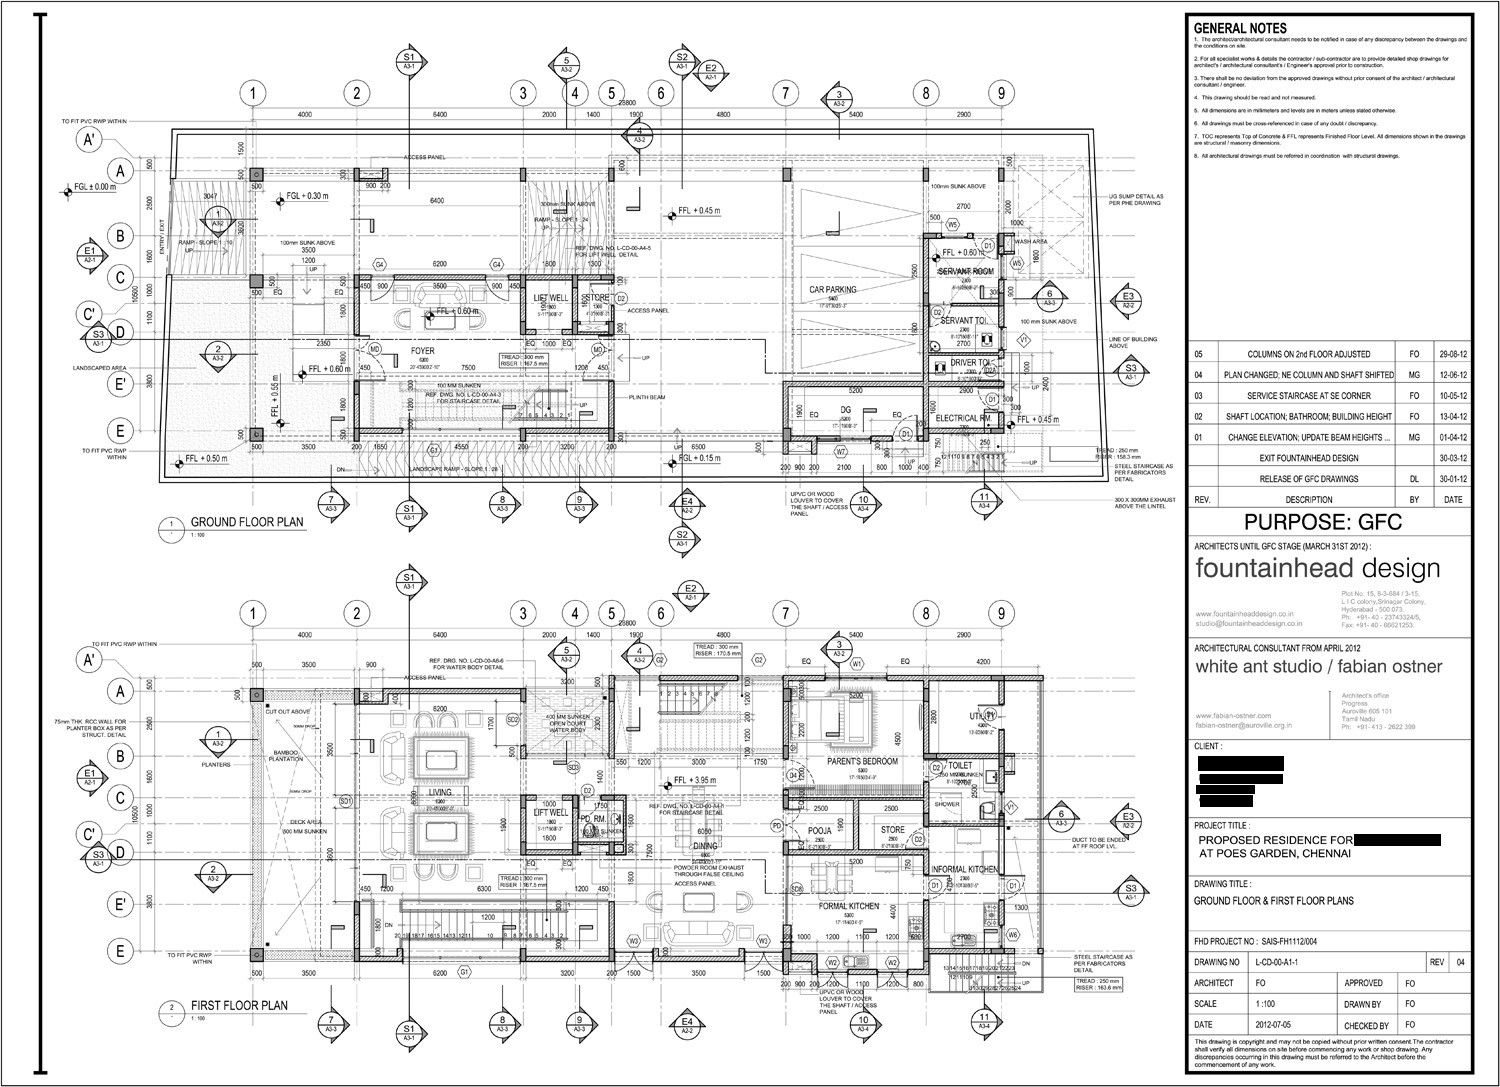 House in poe s garden chennai floorplans for Construction plan drawing